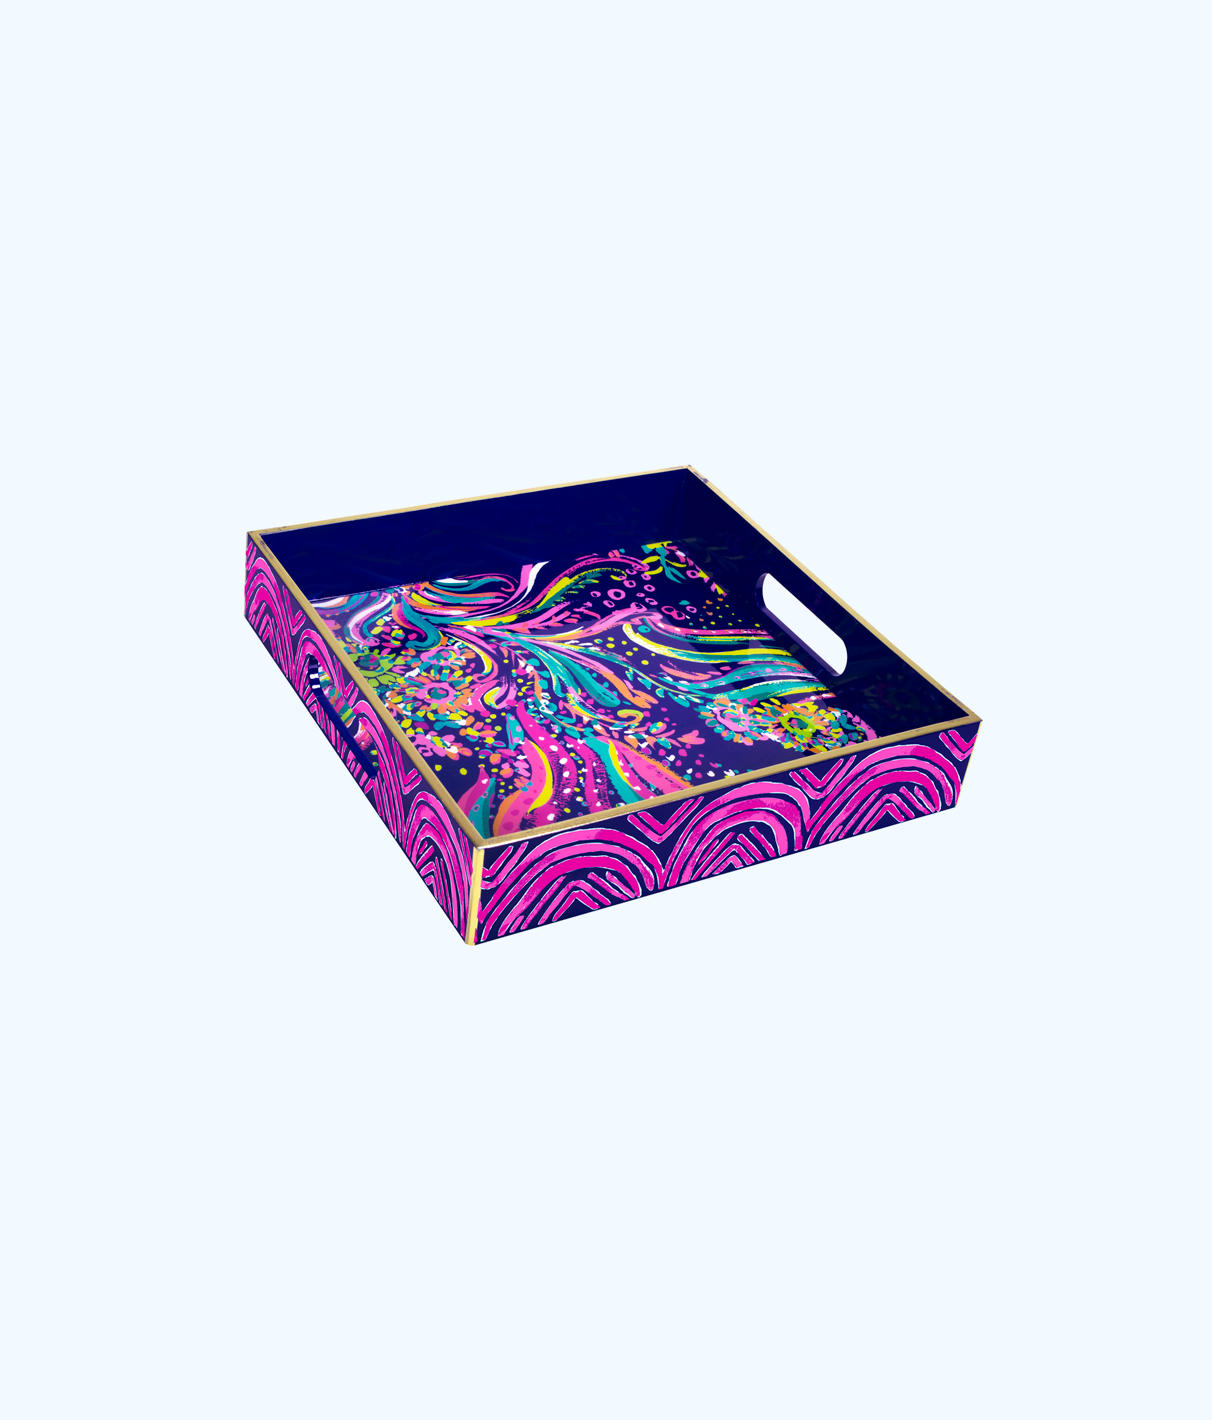 Lilly Pulitzer Lilly Pulitzer Lacquer Tray